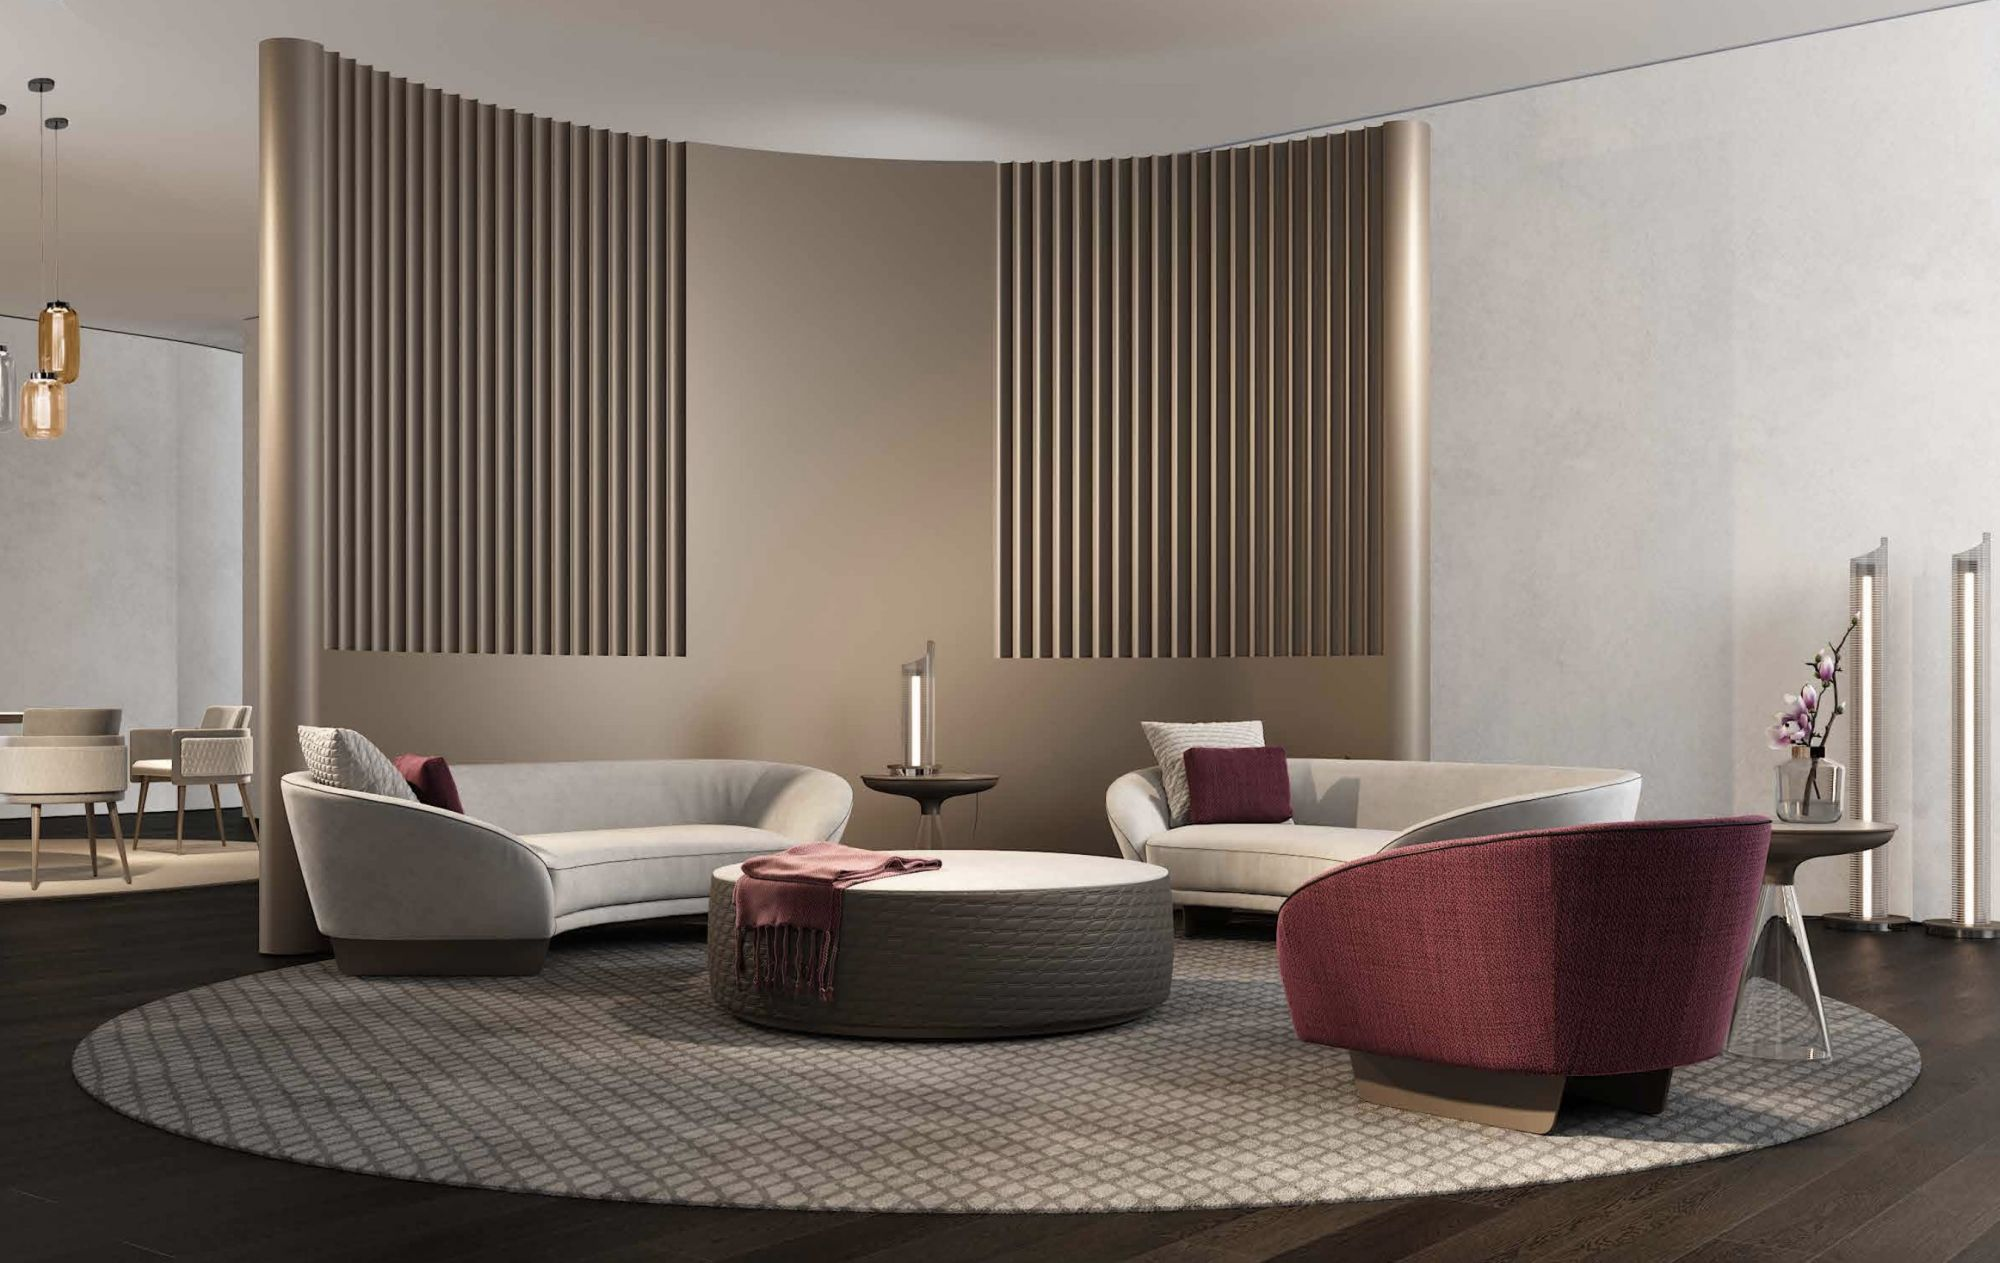 Explore Italian Furniture Collections At This Virtual Showroom By Singapore Retailer Sphere Living